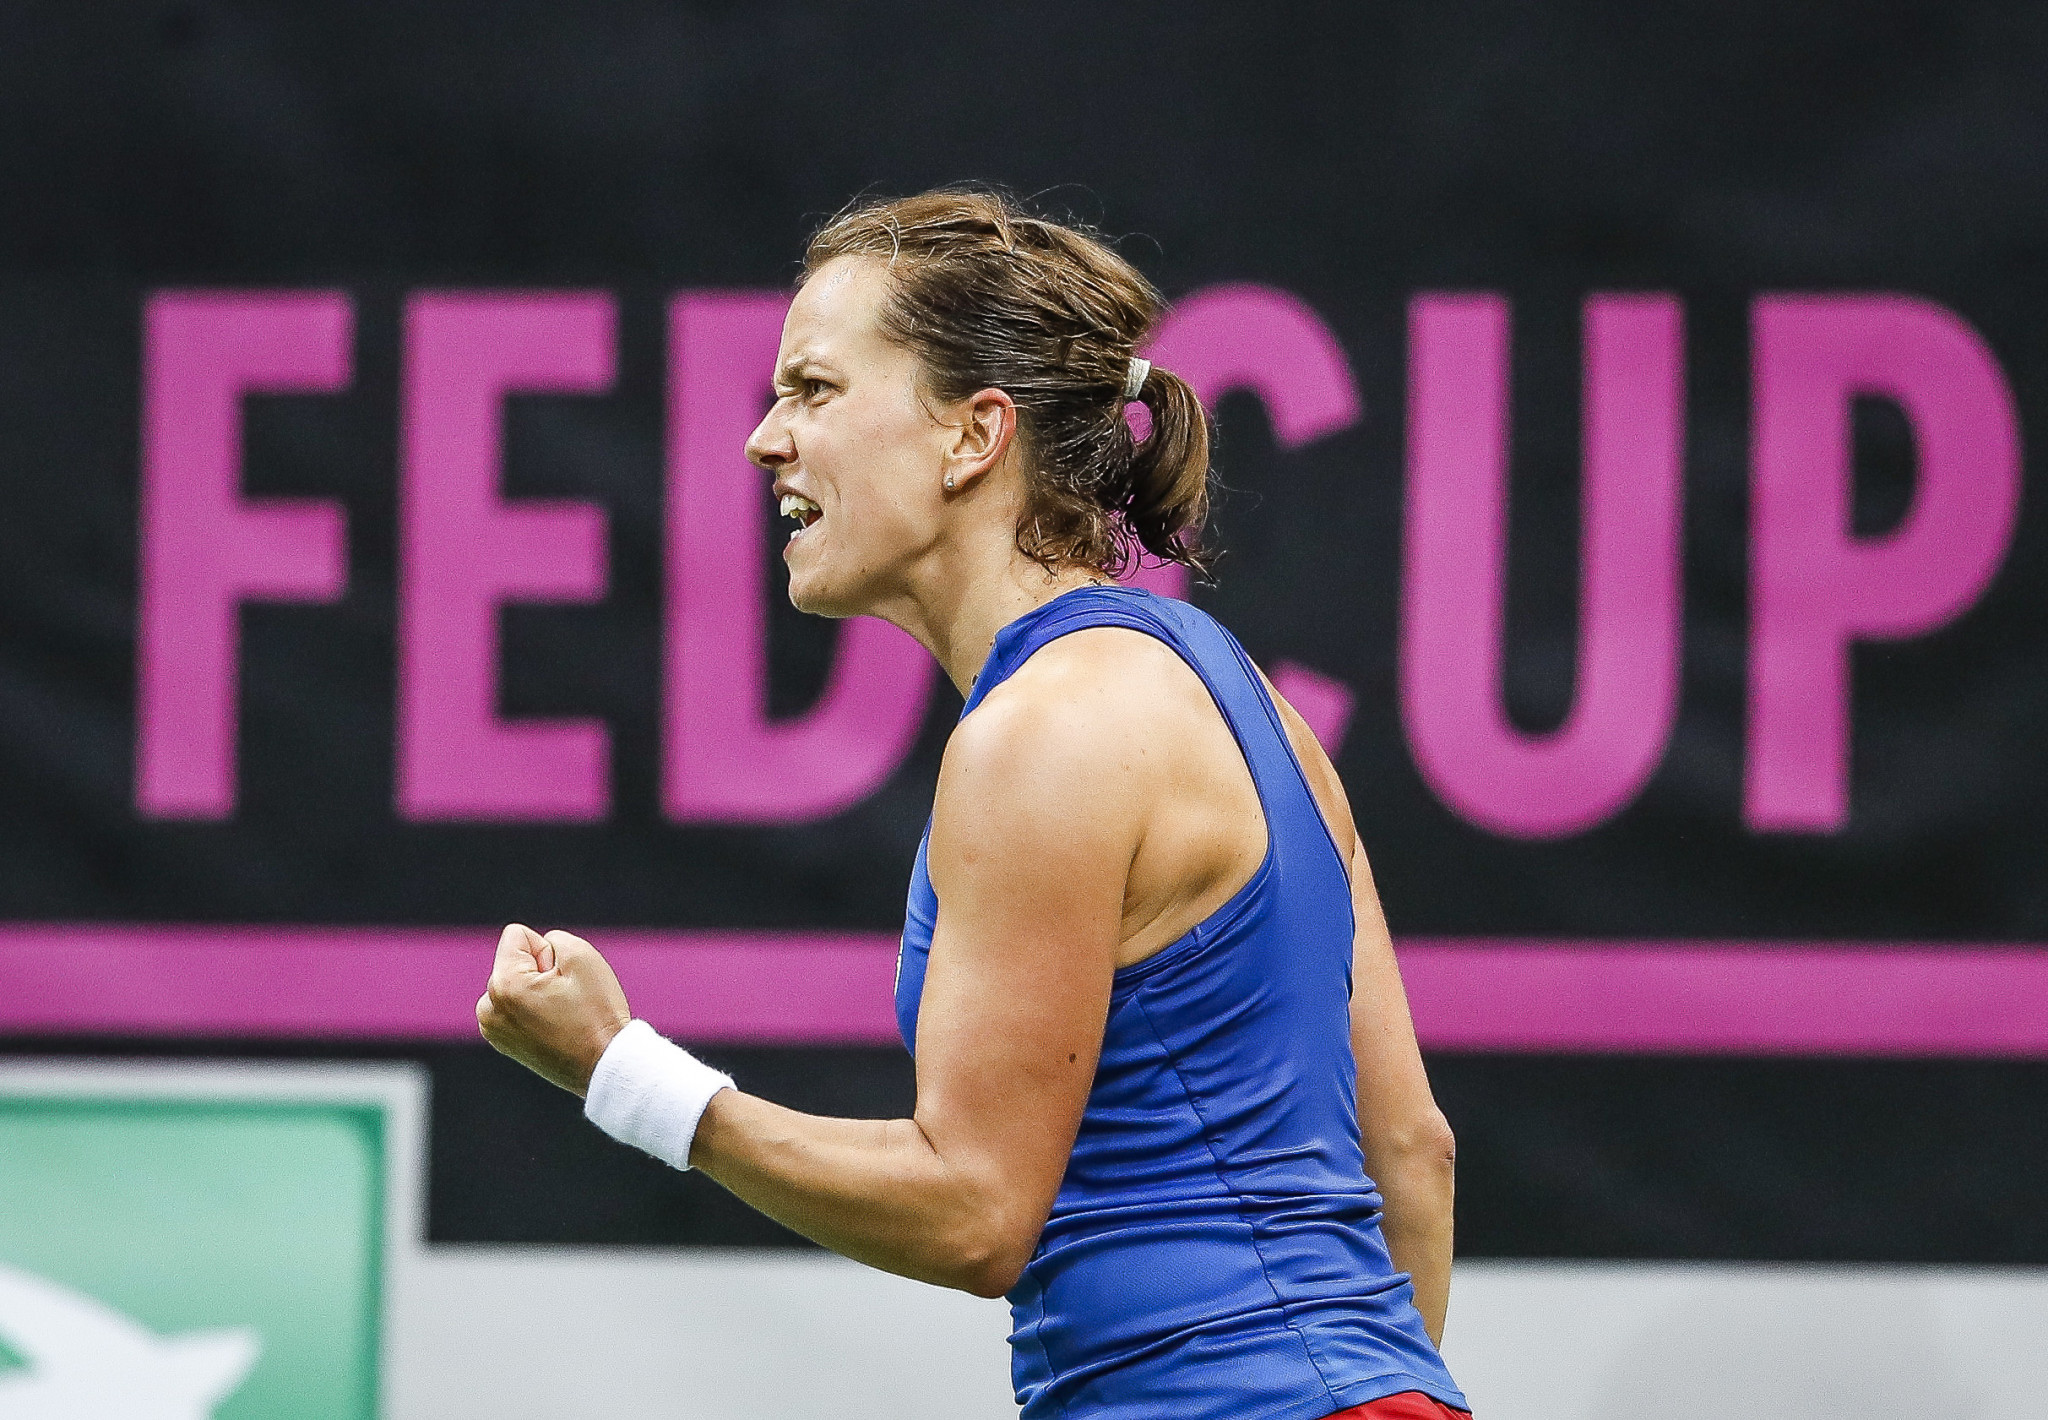 Czech Republic take 2-0 lead against defending champions United States in Fed Cup final